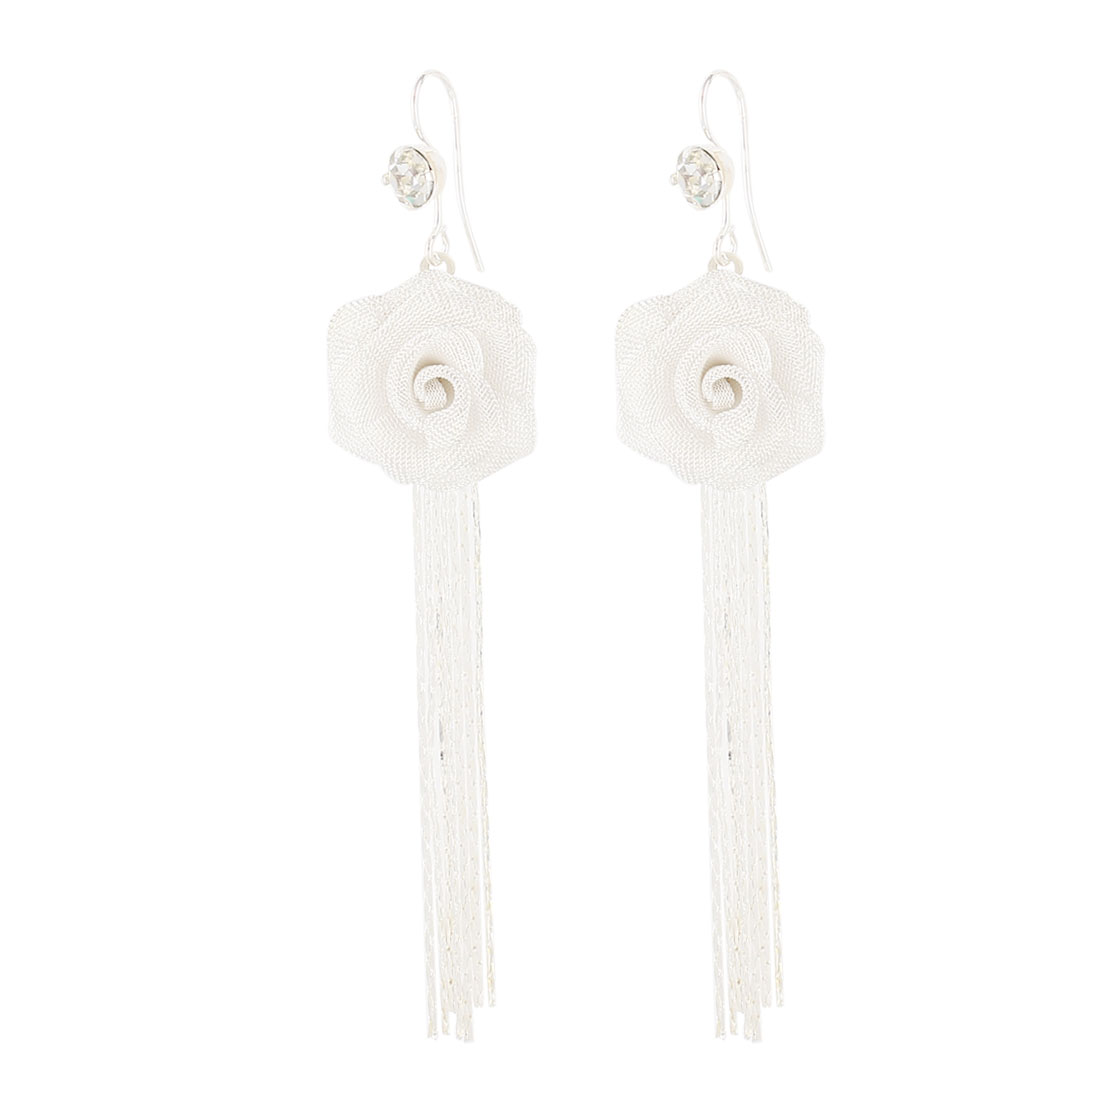 Lady White Nylon Meshy Flower Pandent Adorn Silver Tone Metal Chain Tassels Dangling Hook Earrings Pair